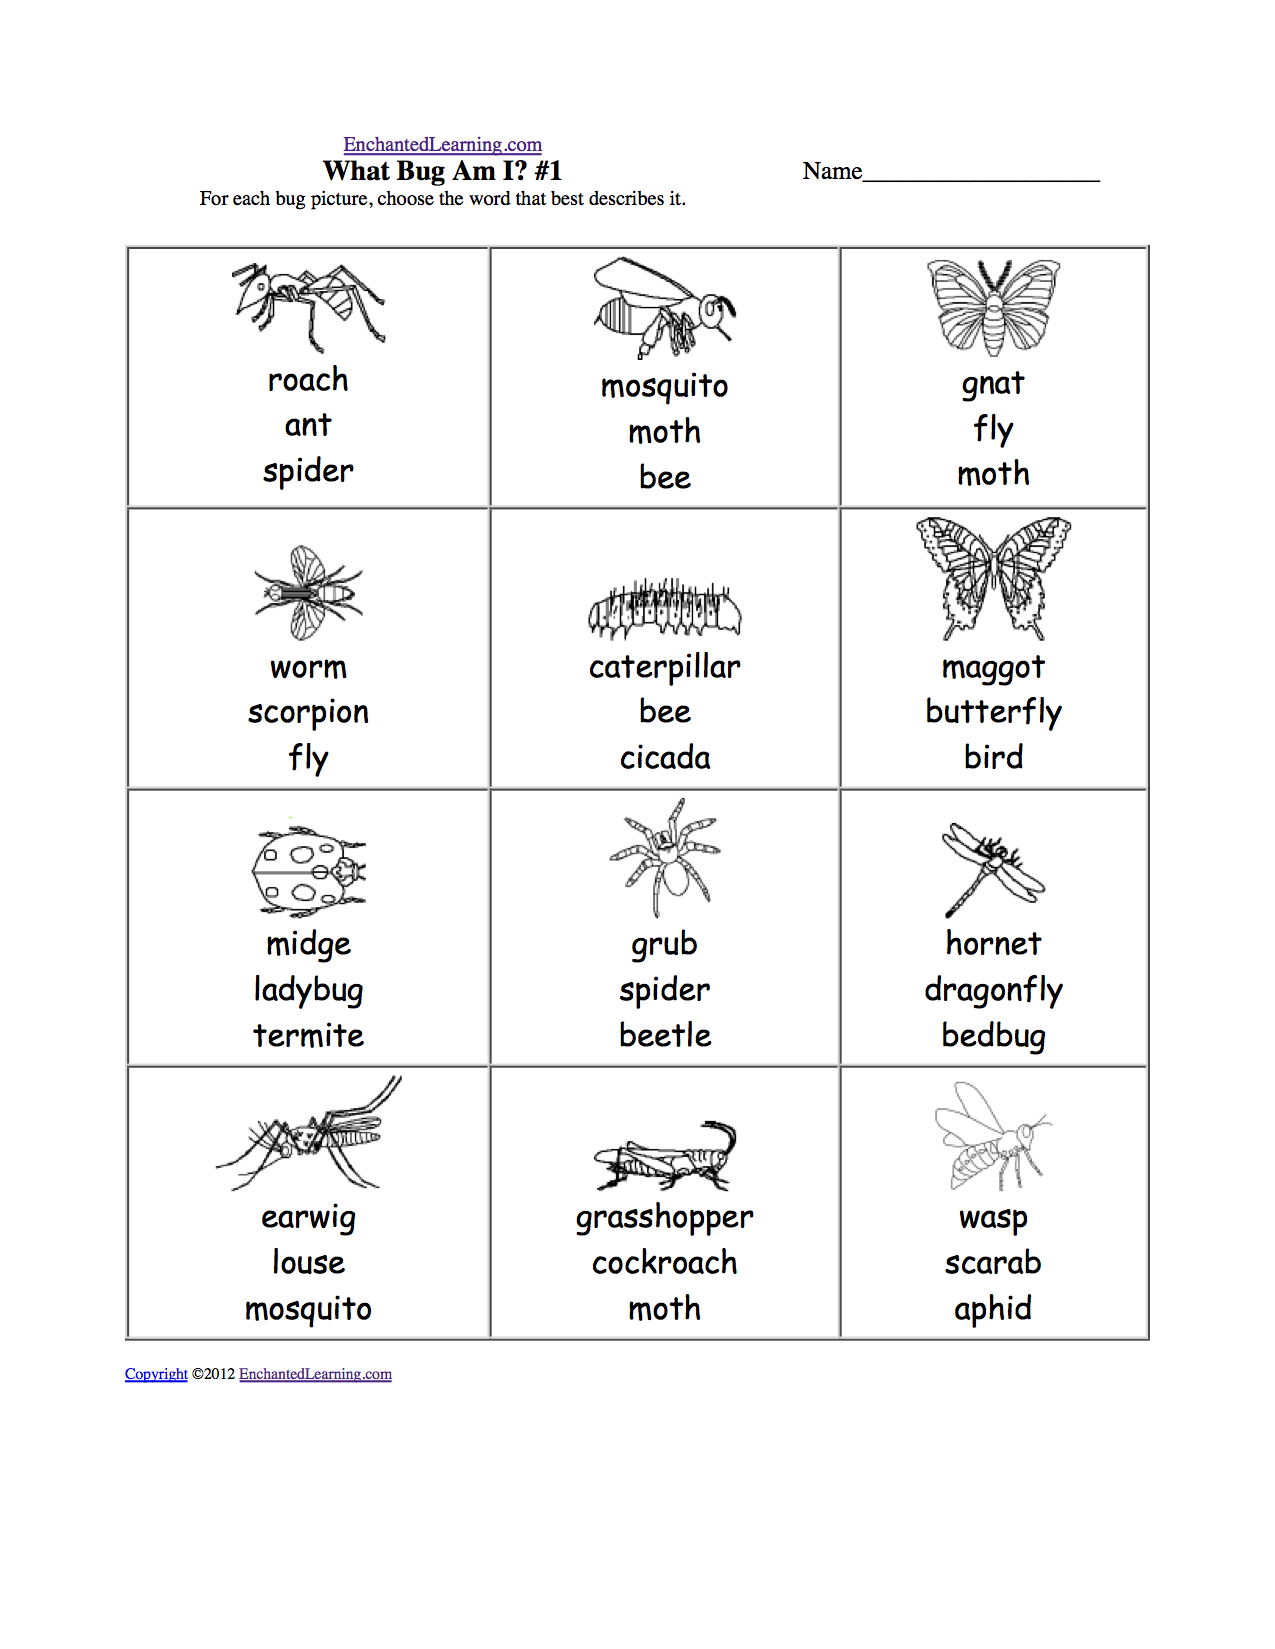 Aldiablosus  Inspiring What Am I Worksheet Printouts  Enchantedlearningcom With Outstanding Printable Reading Worksheets For Th Grade Besides Relative Adverbs Worksheets Furthermore Free Printable Math Word Problem Worksheets For Nd Grade With Delightful Fire Drill Worksheets Also Excel Worksheet Names In Addition Worksheet On Mitosis And Meiosis And Property Of Addition Worksheets As Well As Forming Adjectives From Nouns Worksheets Additionally Free Greatest Common Factor Worksheets From Enchantedlearningcom With Aldiablosus  Outstanding What Am I Worksheet Printouts  Enchantedlearningcom With Delightful Printable Reading Worksheets For Th Grade Besides Relative Adverbs Worksheets Furthermore Free Printable Math Word Problem Worksheets For Nd Grade And Inspiring Fire Drill Worksheets Also Excel Worksheet Names In Addition Worksheet On Mitosis And Meiosis From Enchantedlearningcom